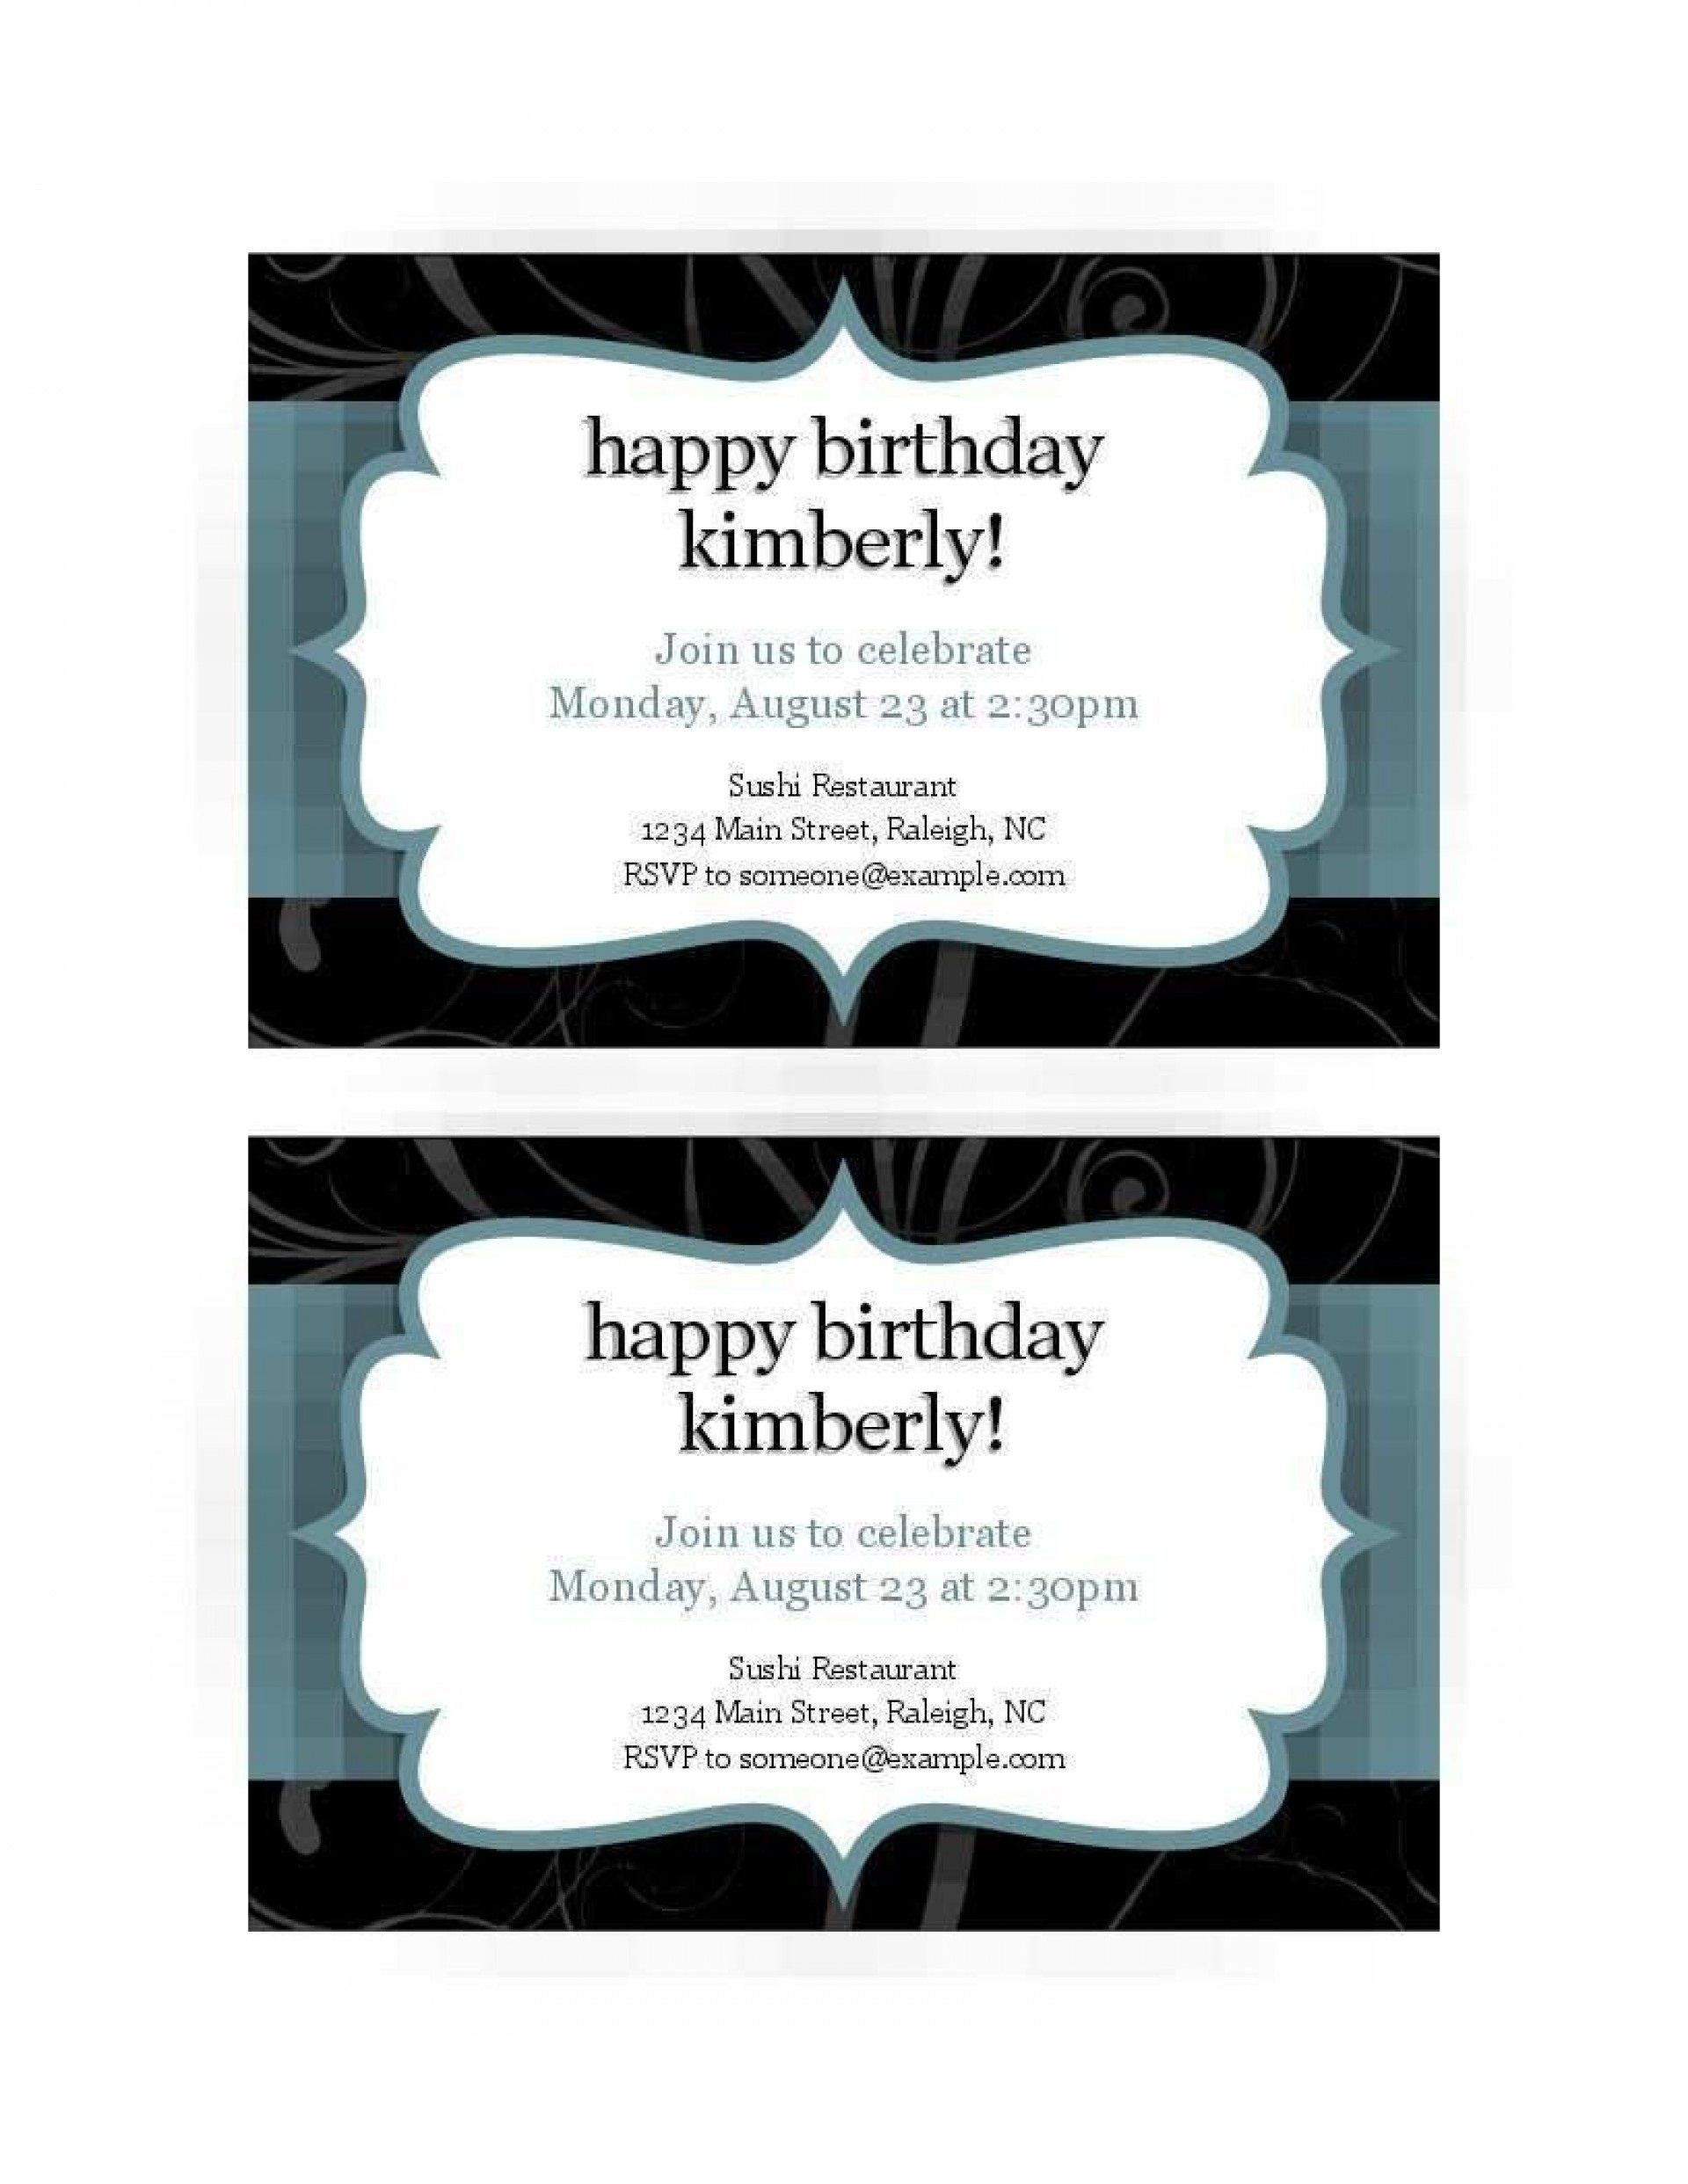 008 Excellent Free Busines Invitation Template For Word Highest Quality 1920